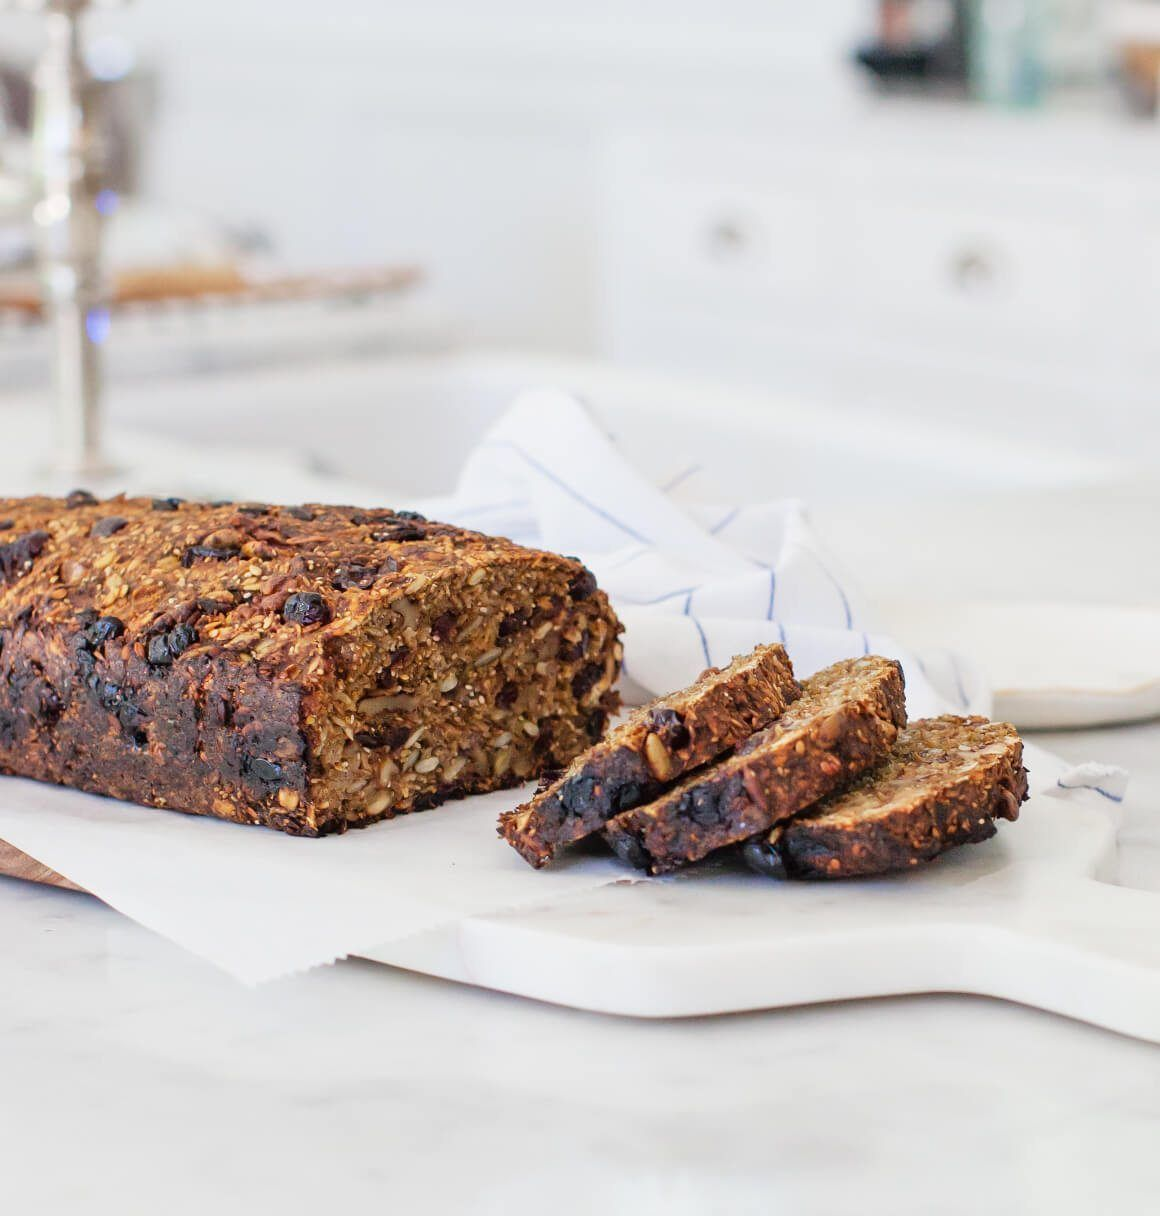 Alanna's Pumpkin Cranberry Nut and Seed Loaf